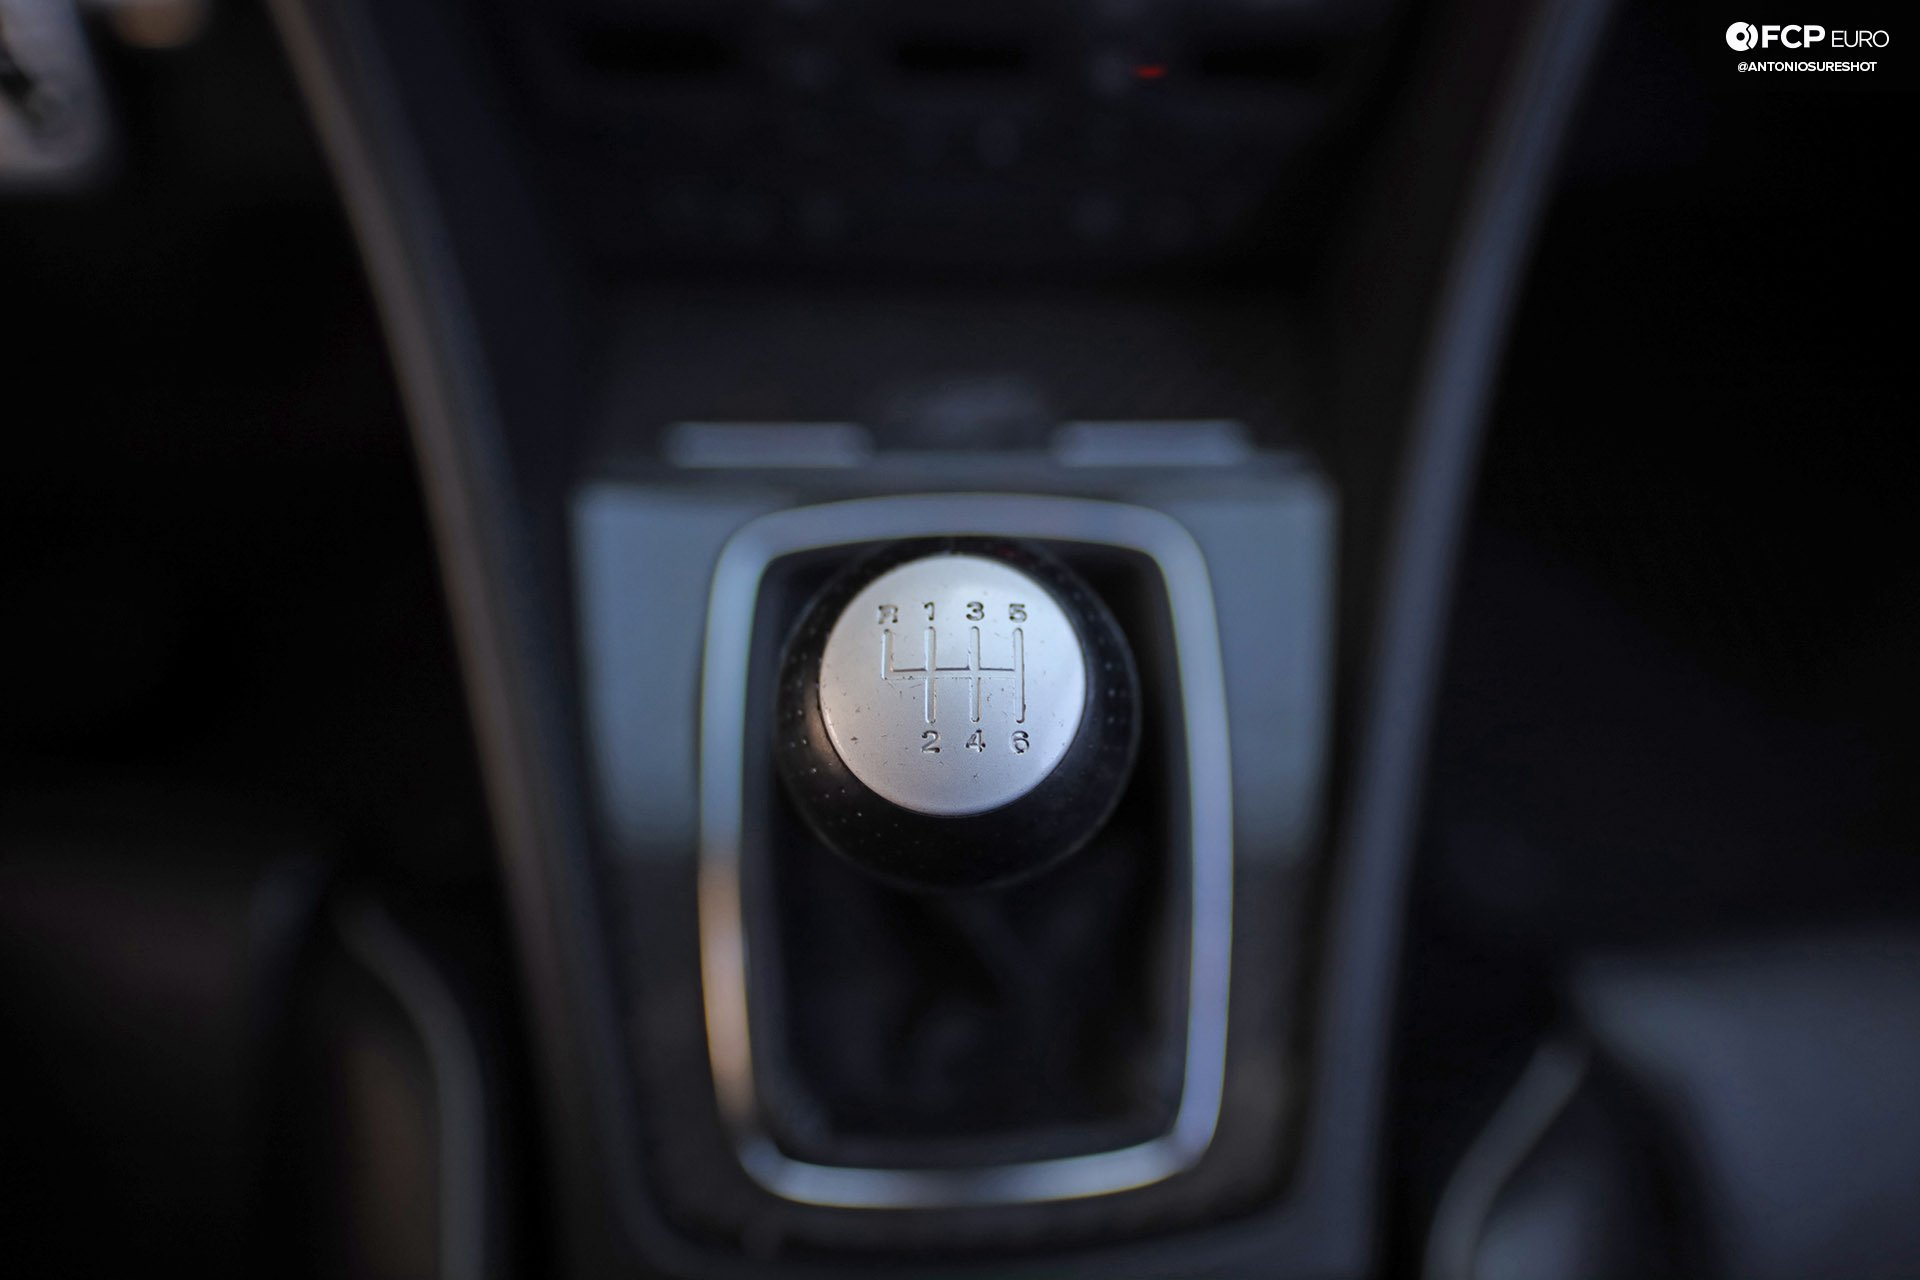 B7 Audi RS4 shift knob